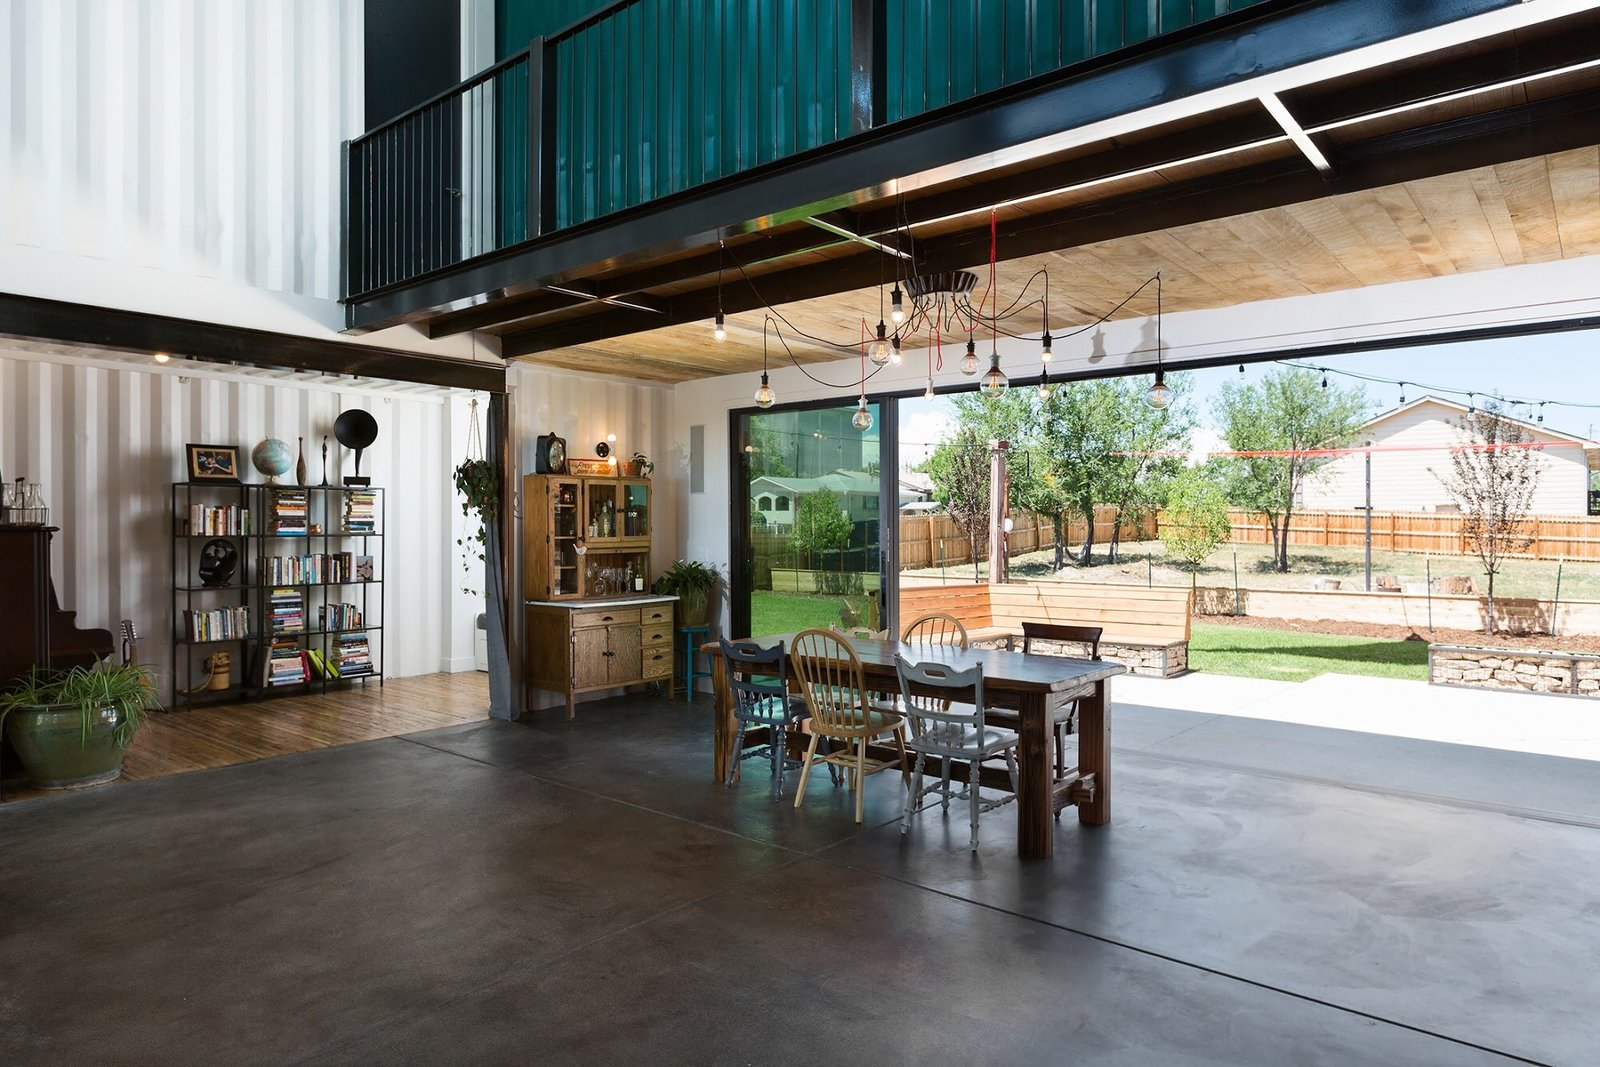 Chris Boylen Photography Tagged: Dining Room, Ceiling Lighting, Table, and Bench.  The Container house by regan foster